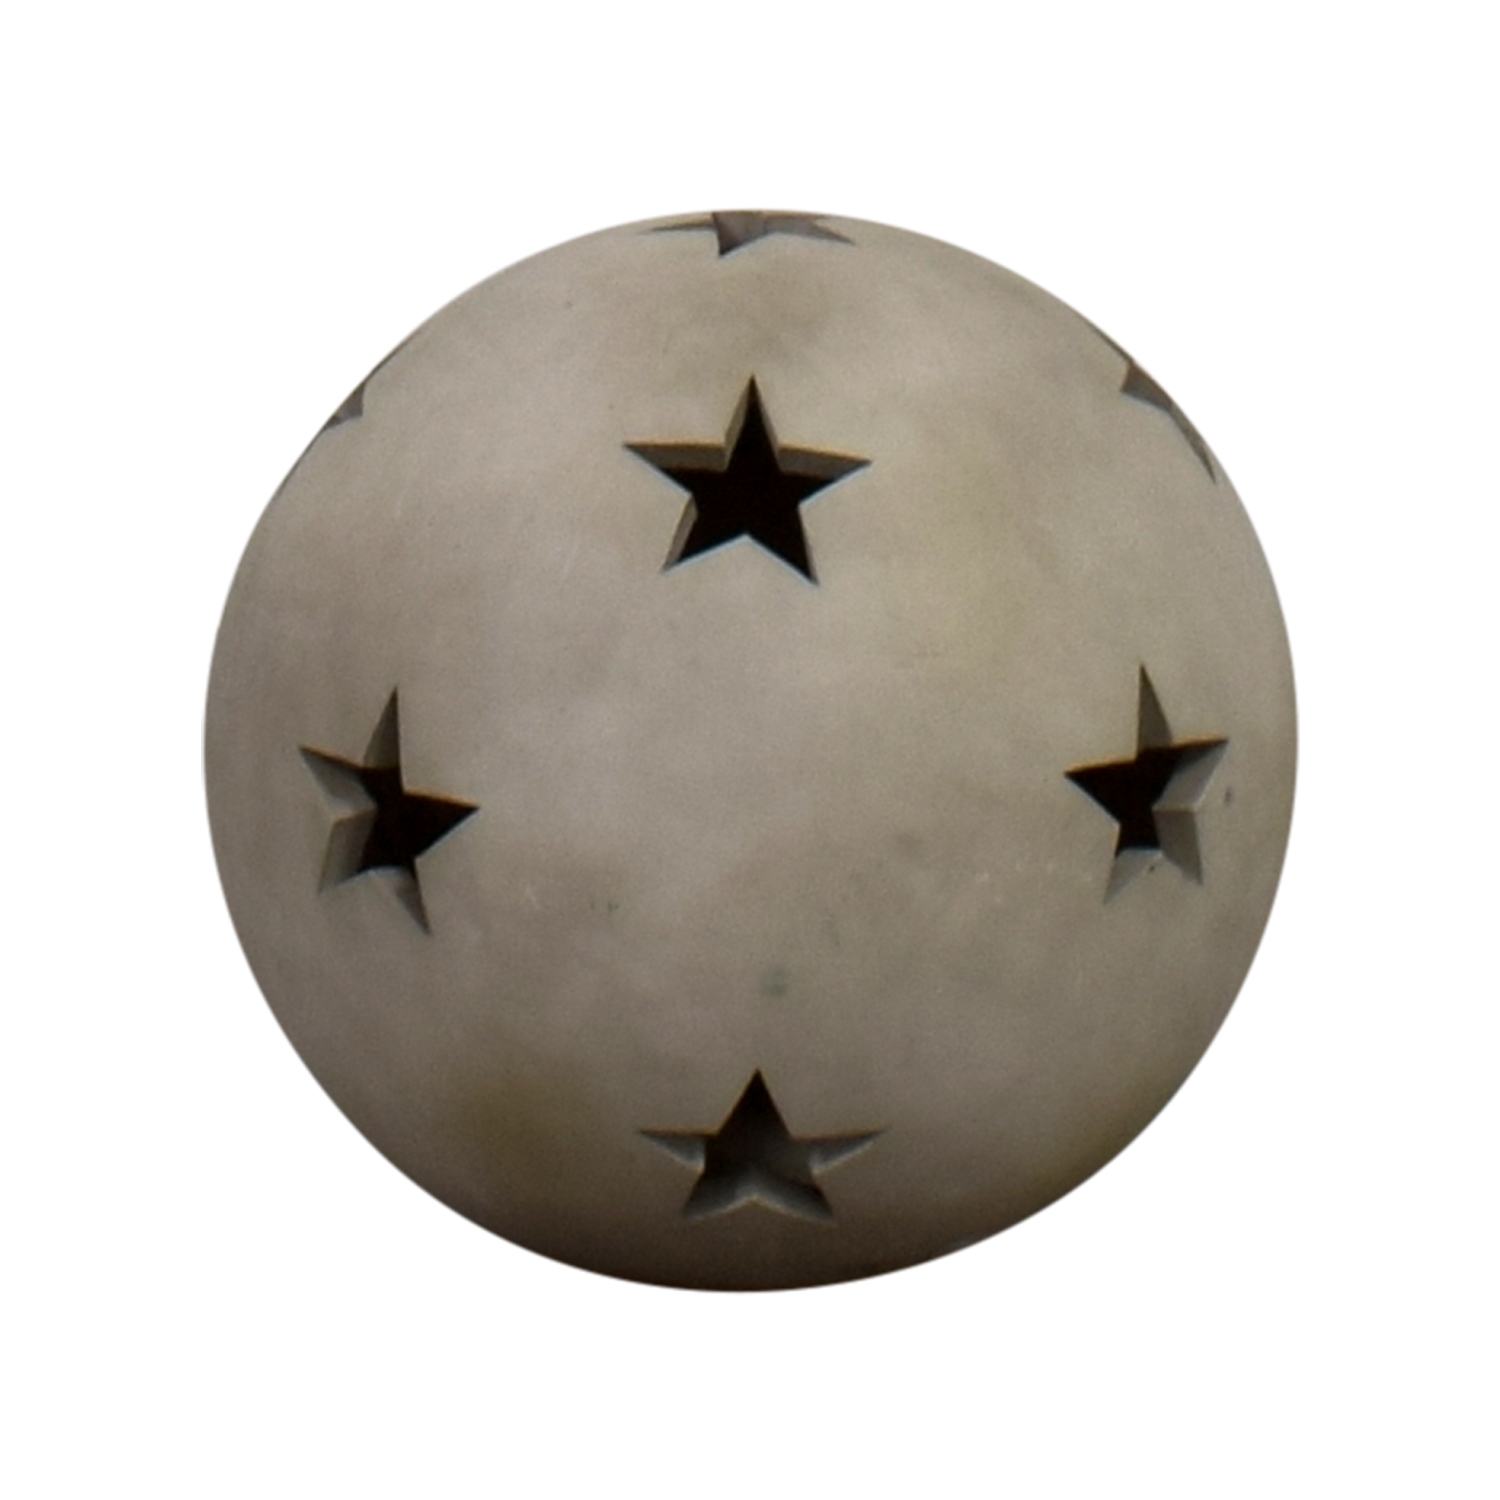 Clay Star Ball Decorative Accents